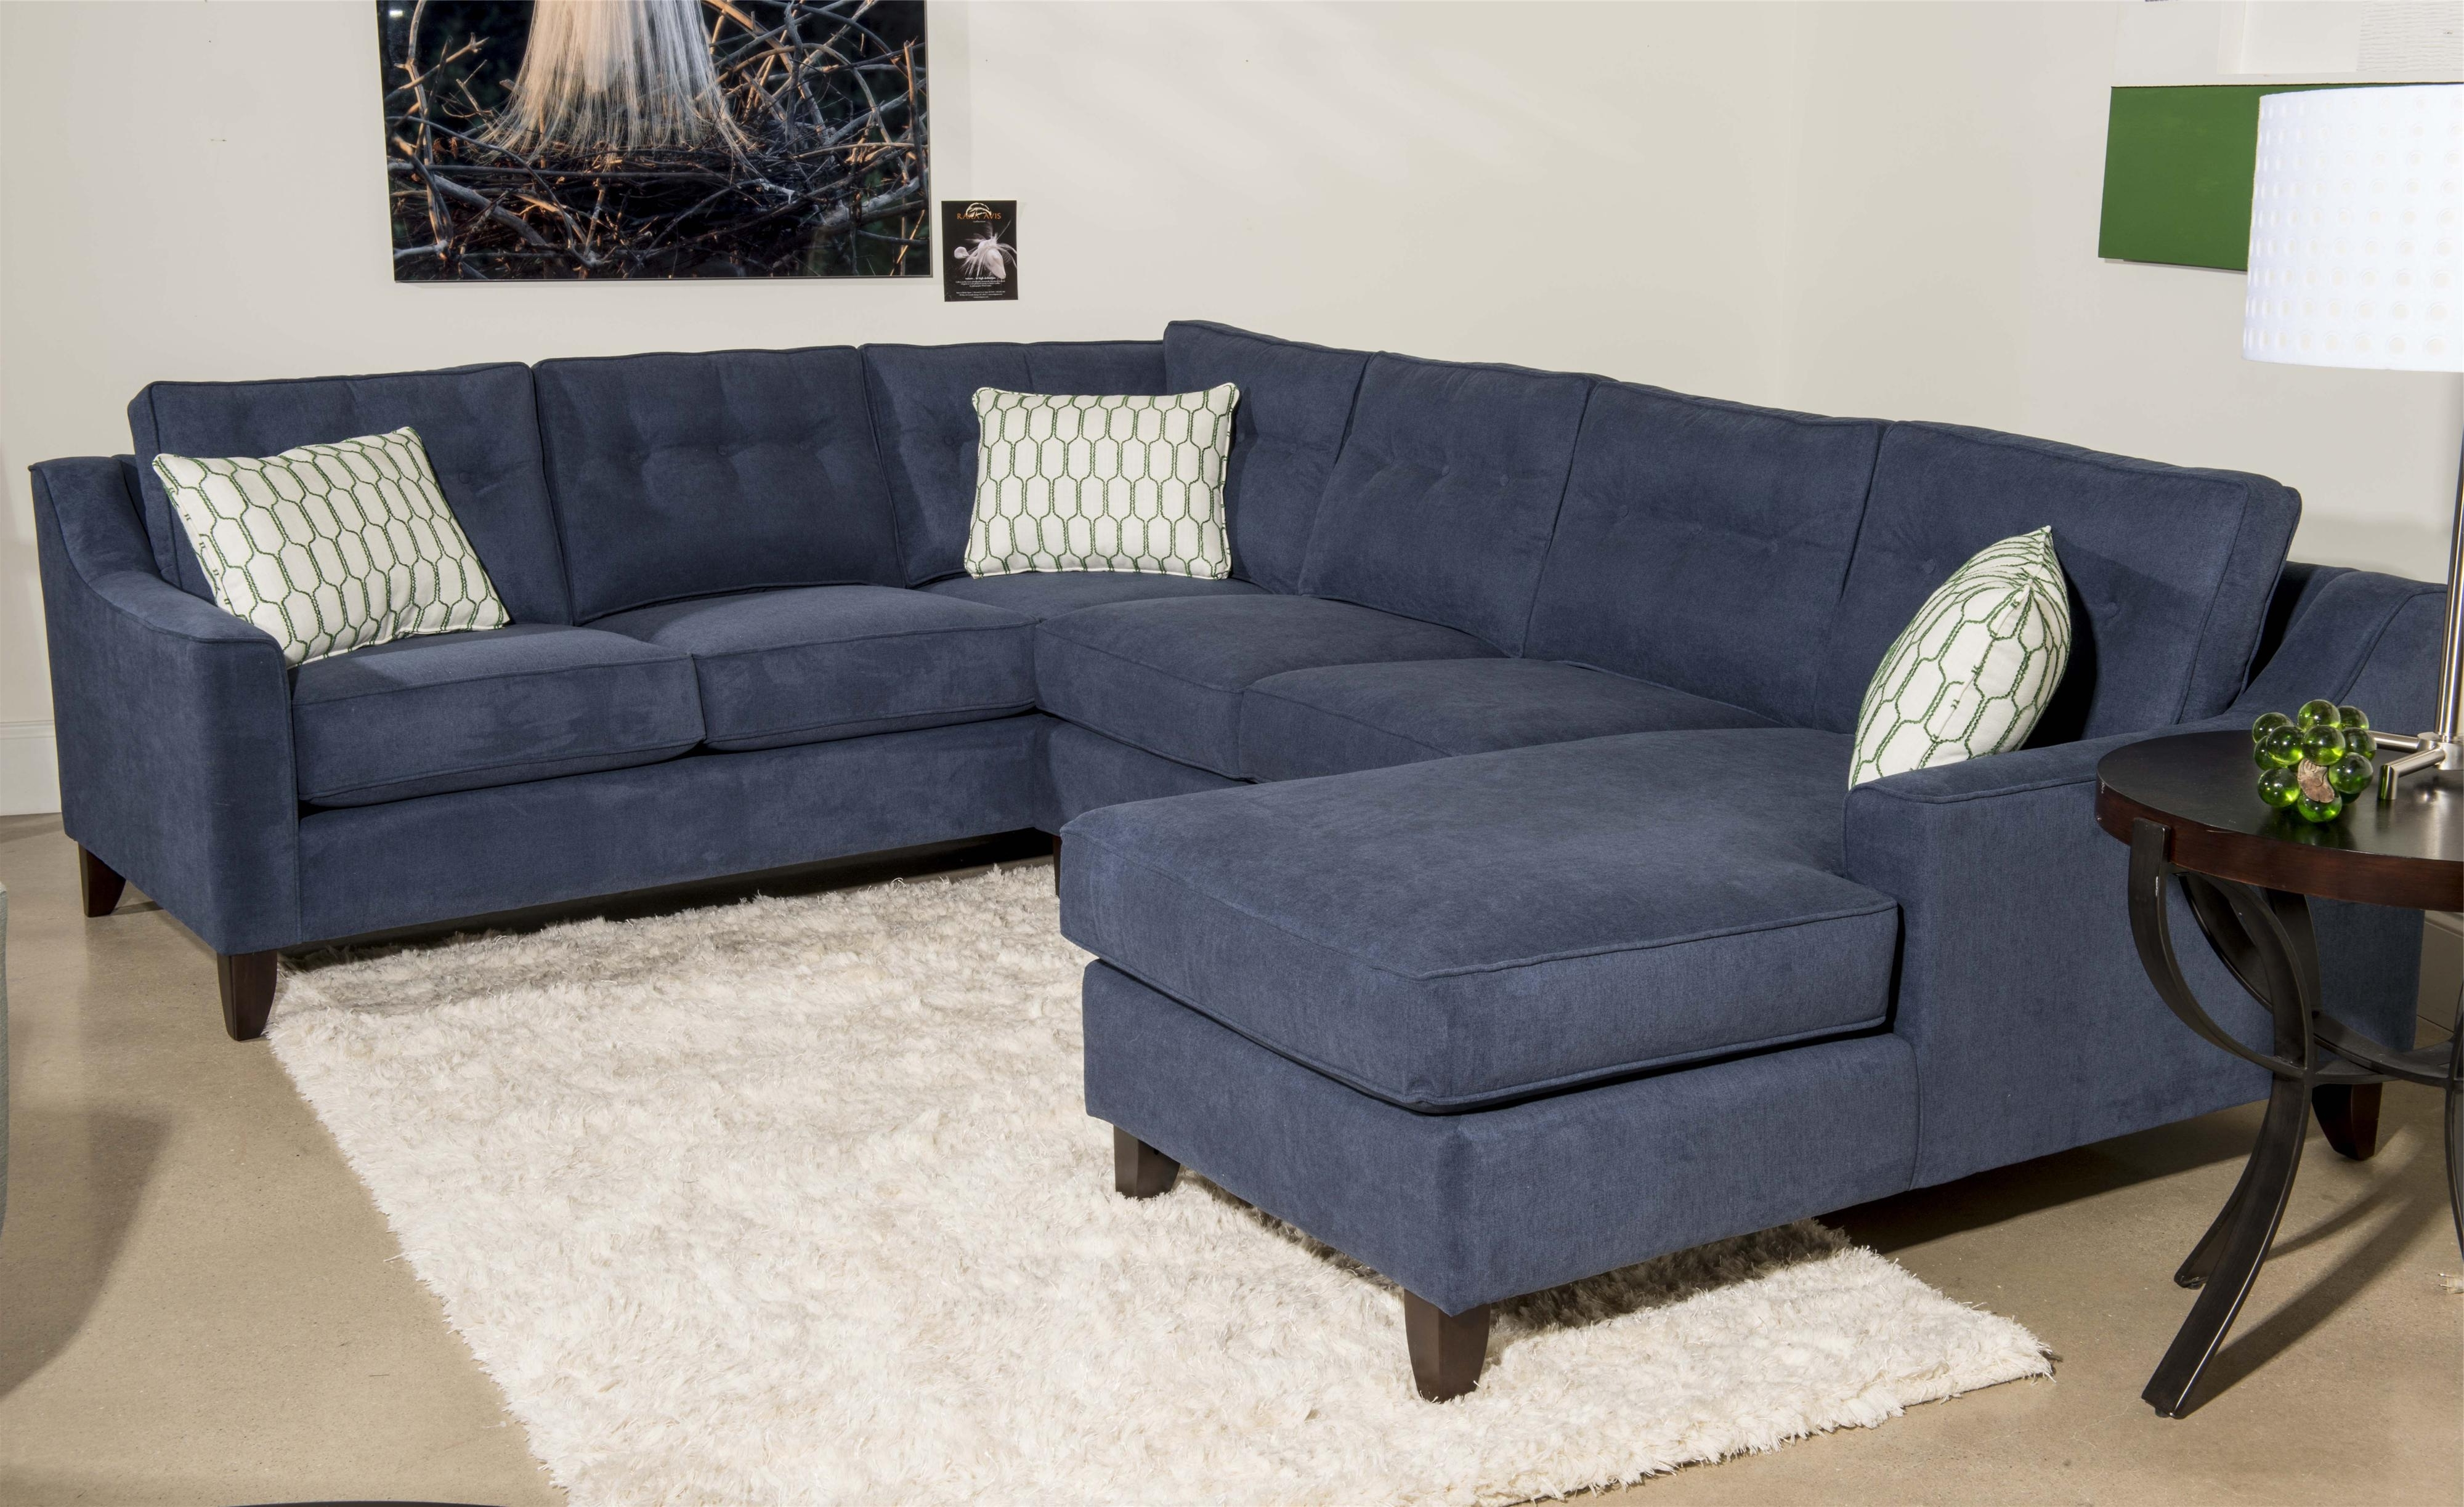 Most Current 3 Piece Sectional Sleeper Sofas Inside Contemporary 3 Piece Sectional Sofa With Chaiseklaussner (View 11 of 15)